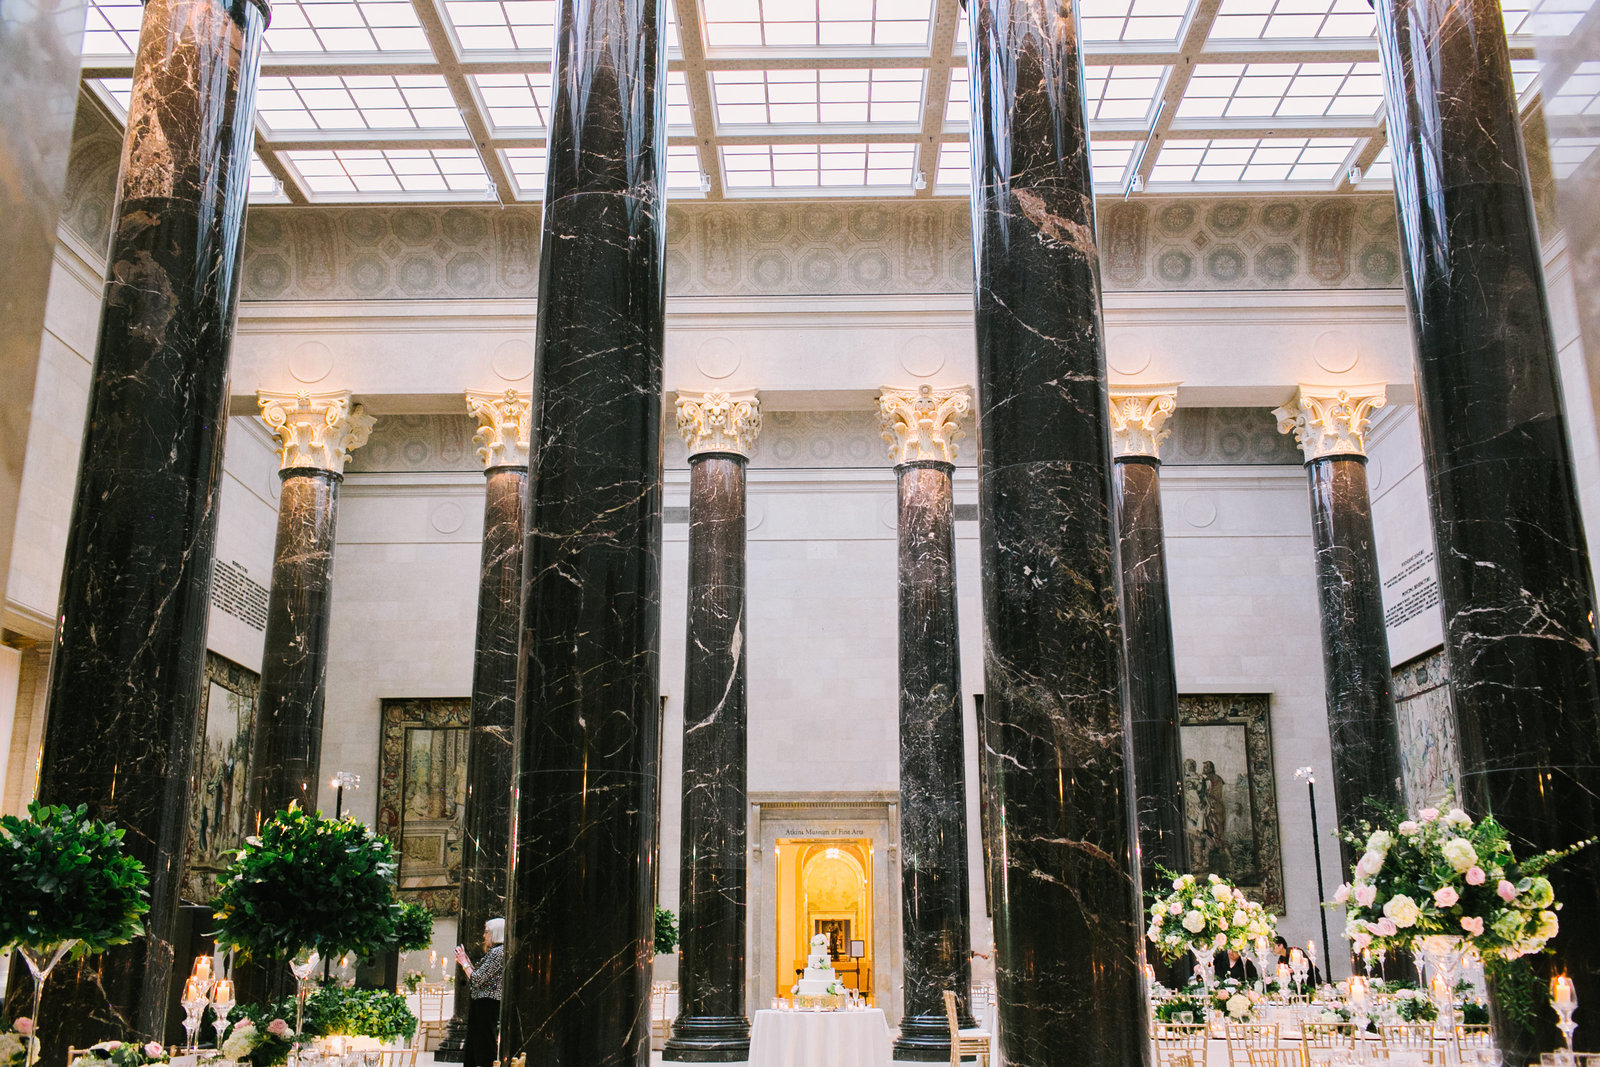 Nelson-Atkins-Kansas-City-Luxury-Garden-Wedding-Planning-Madison-Sanders-Kirkwood-Hall-Reception-553